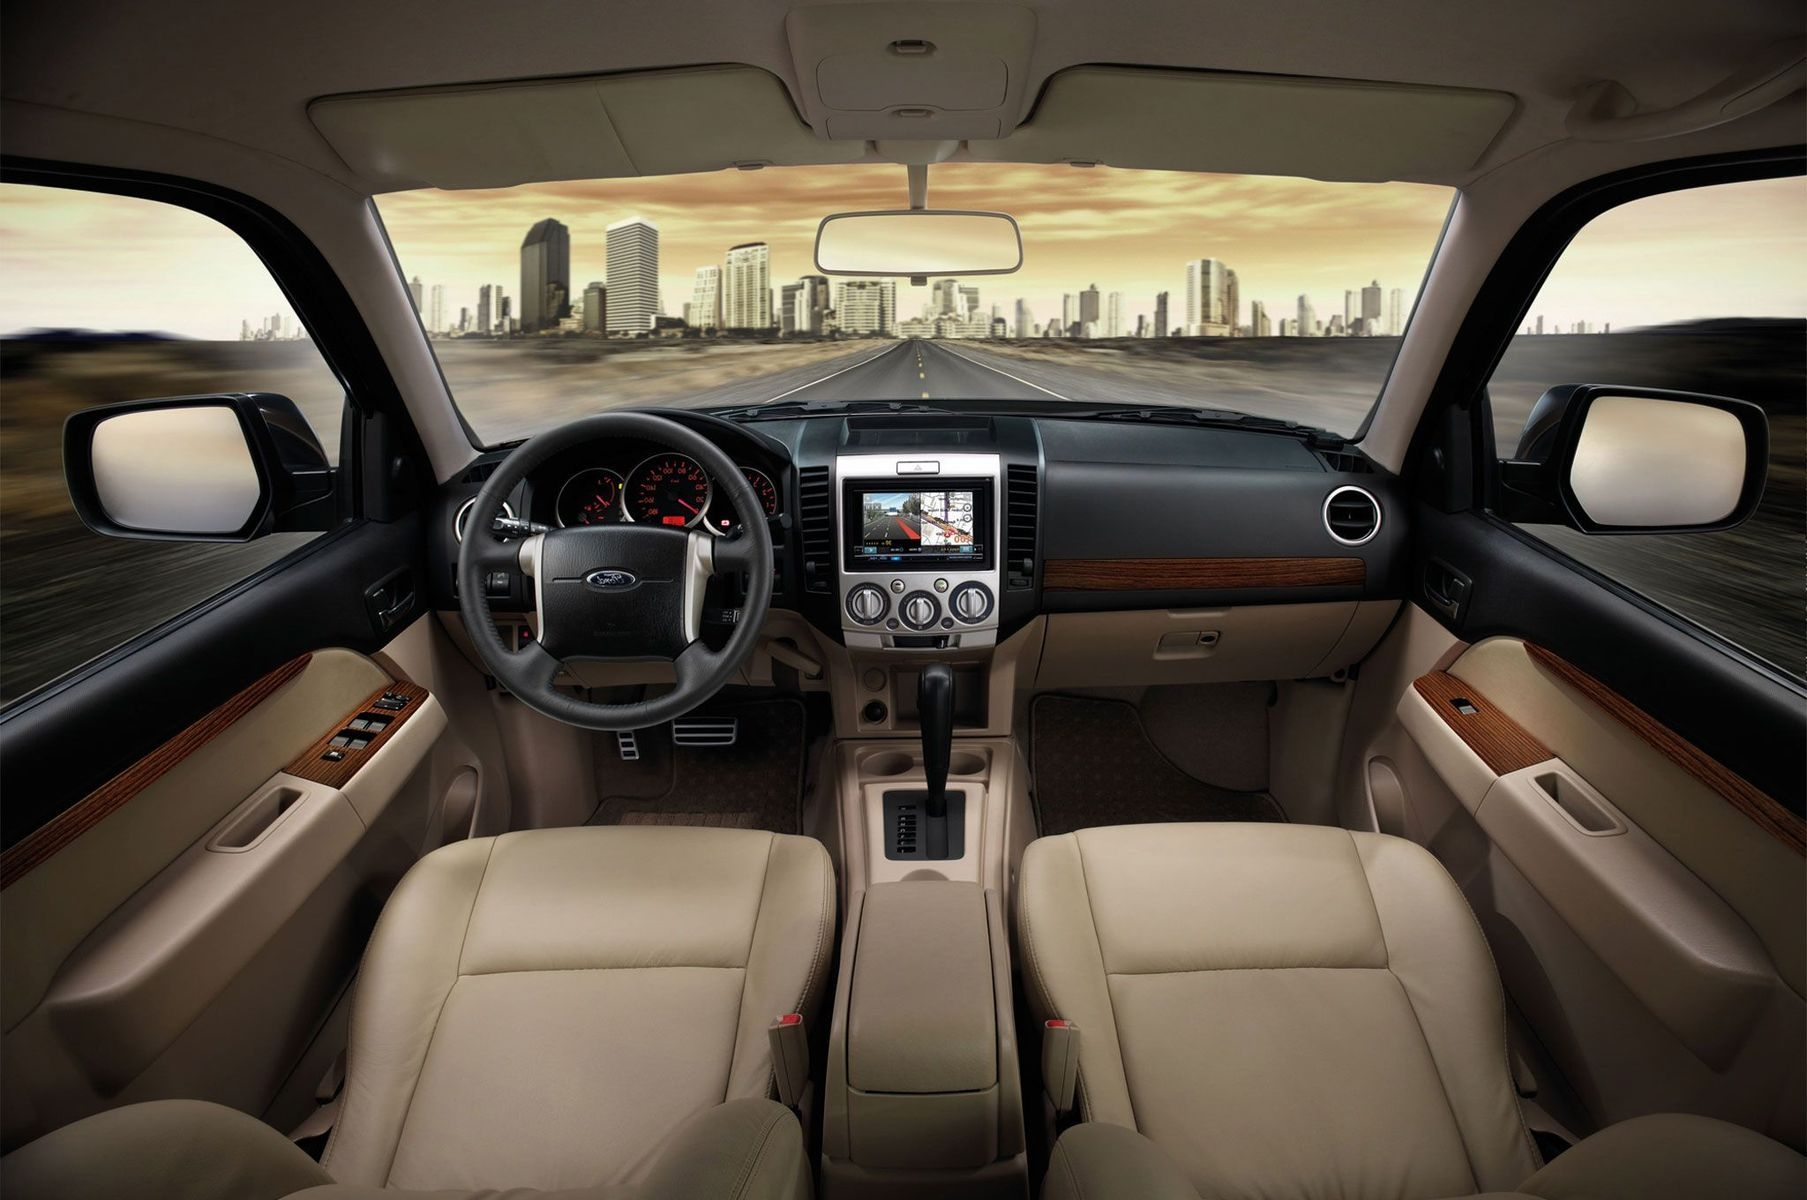 2018 Ford Everest interior - 2020, 2021 and 2022 New SUV Models